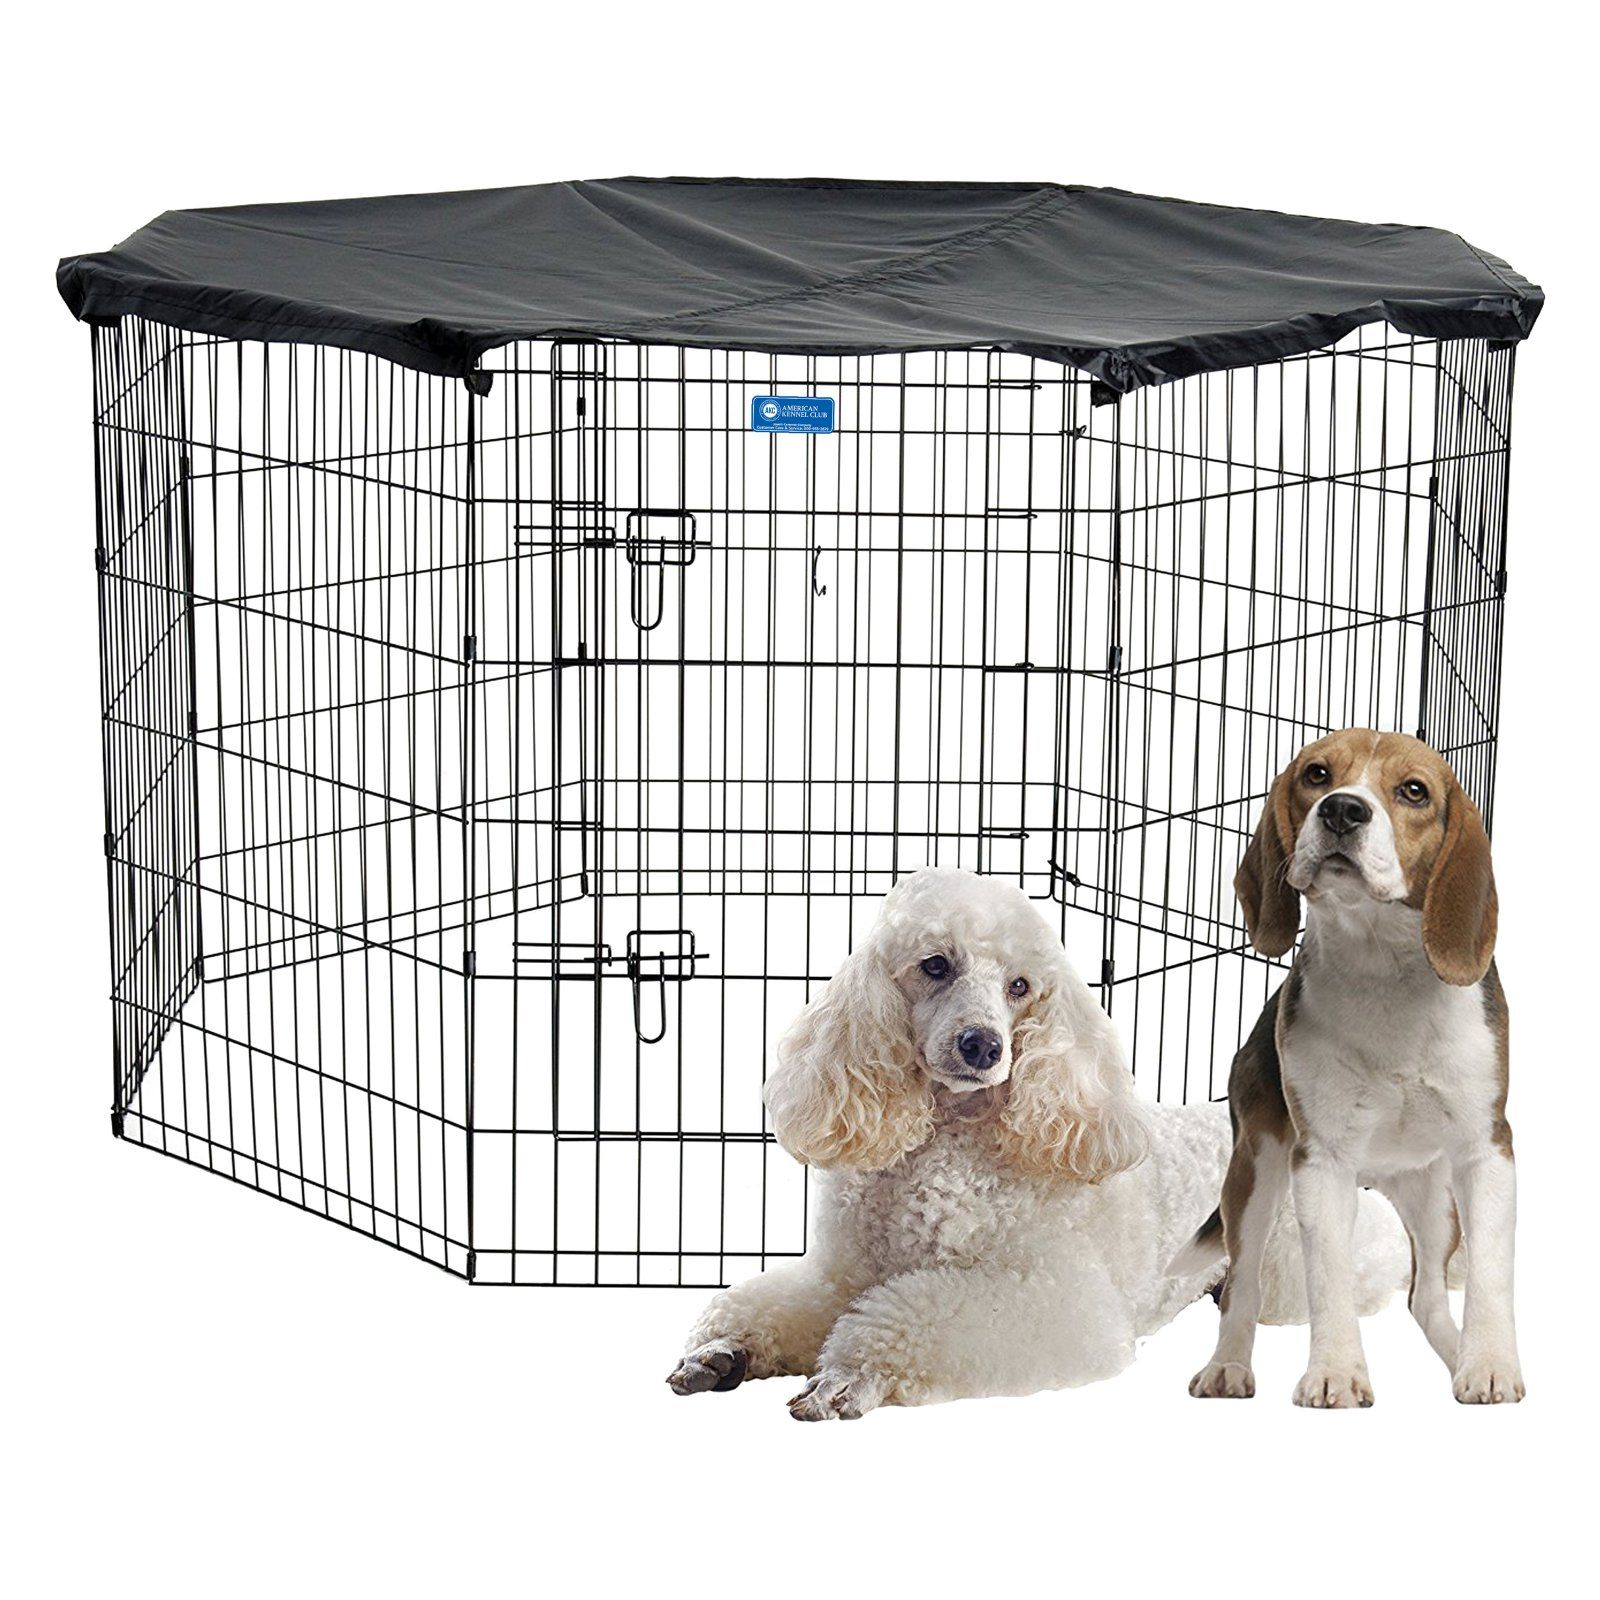 Akc Pet Exercise Play Pen With Cover For Indoor Or Outdoor Dog